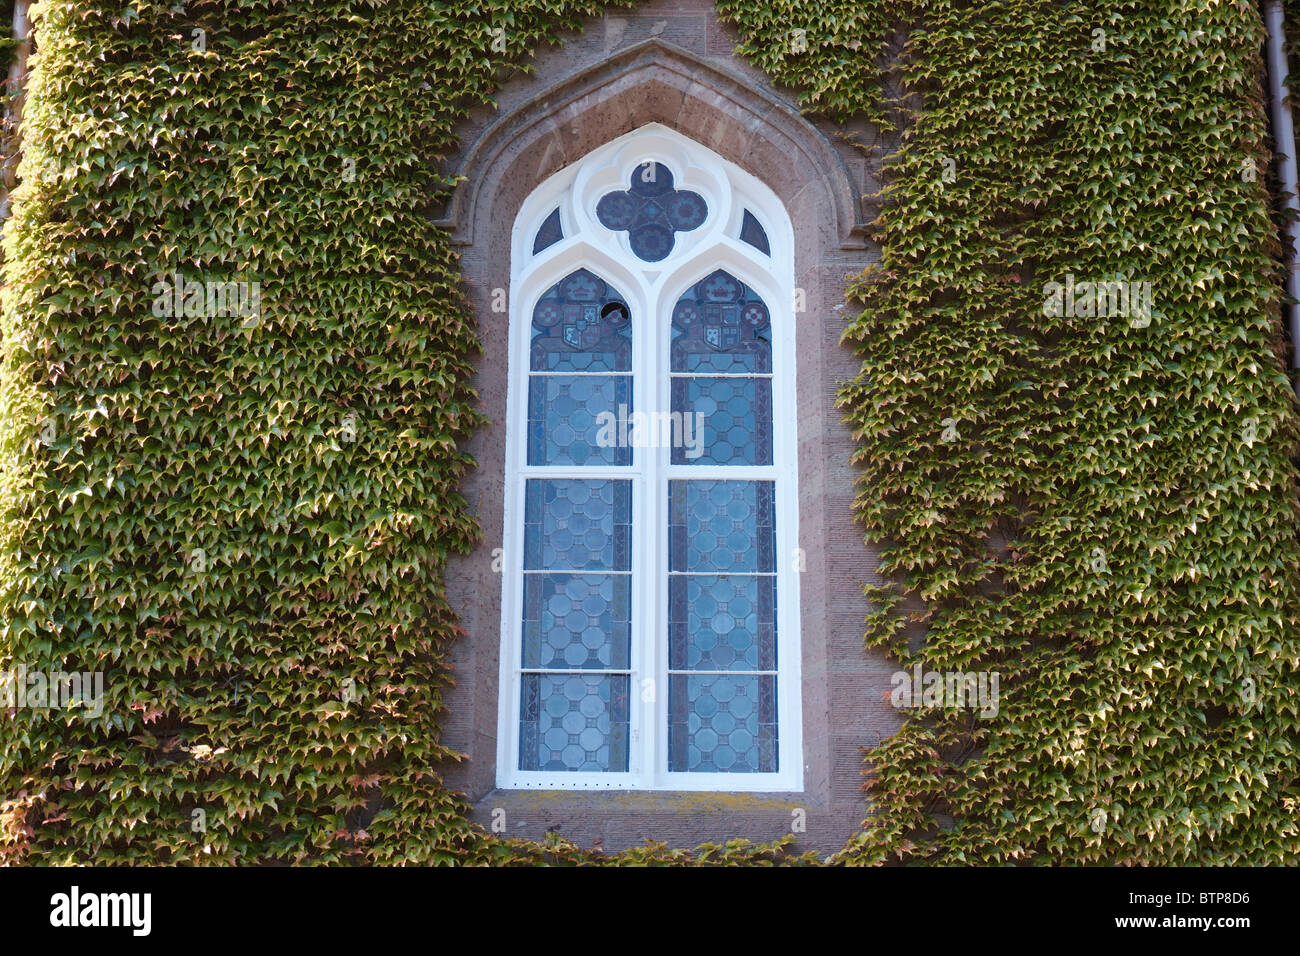 Scotland, Scone Palace, Ivy growing on wall - Stock Image